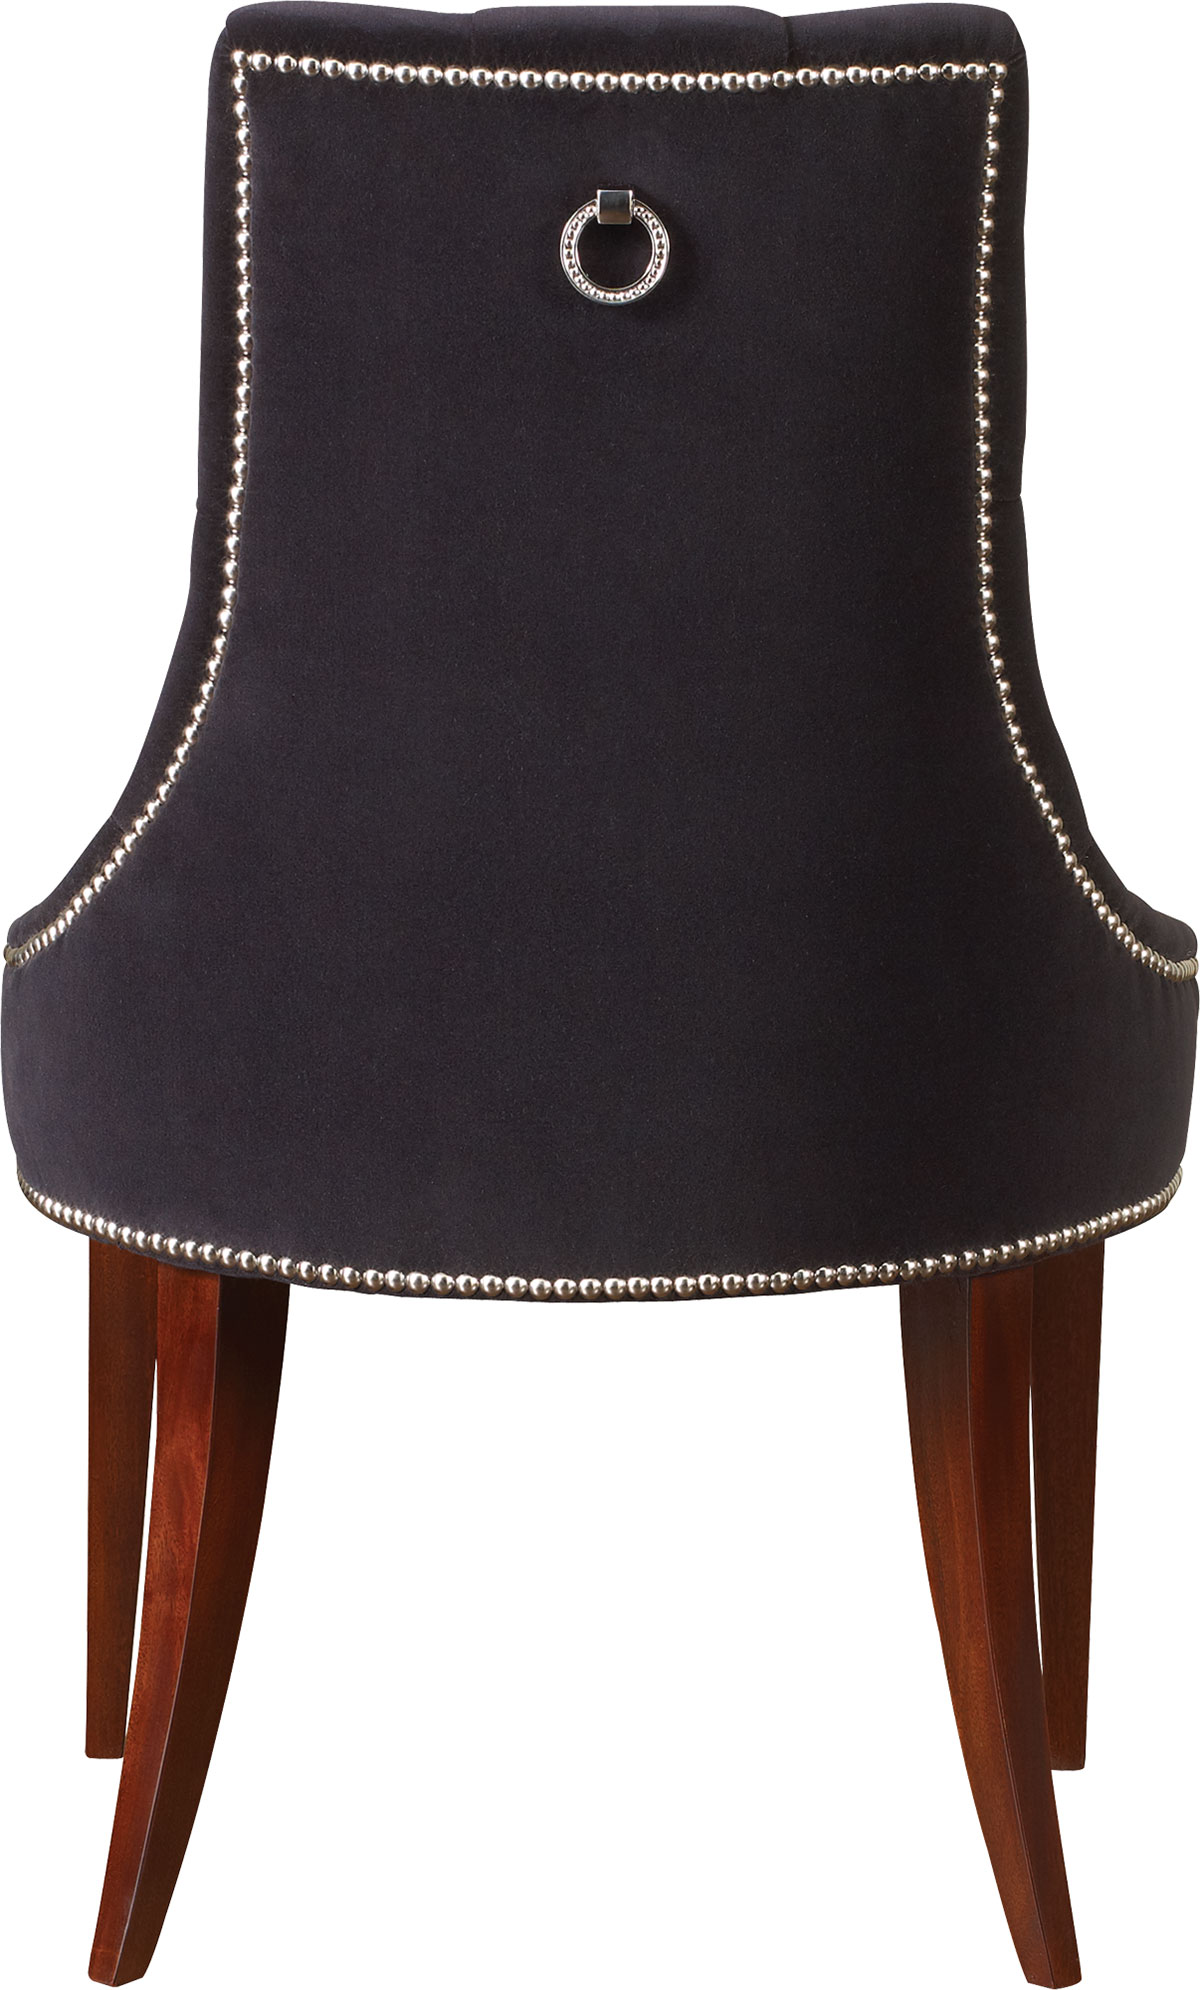 RITZ DINING CHAIR